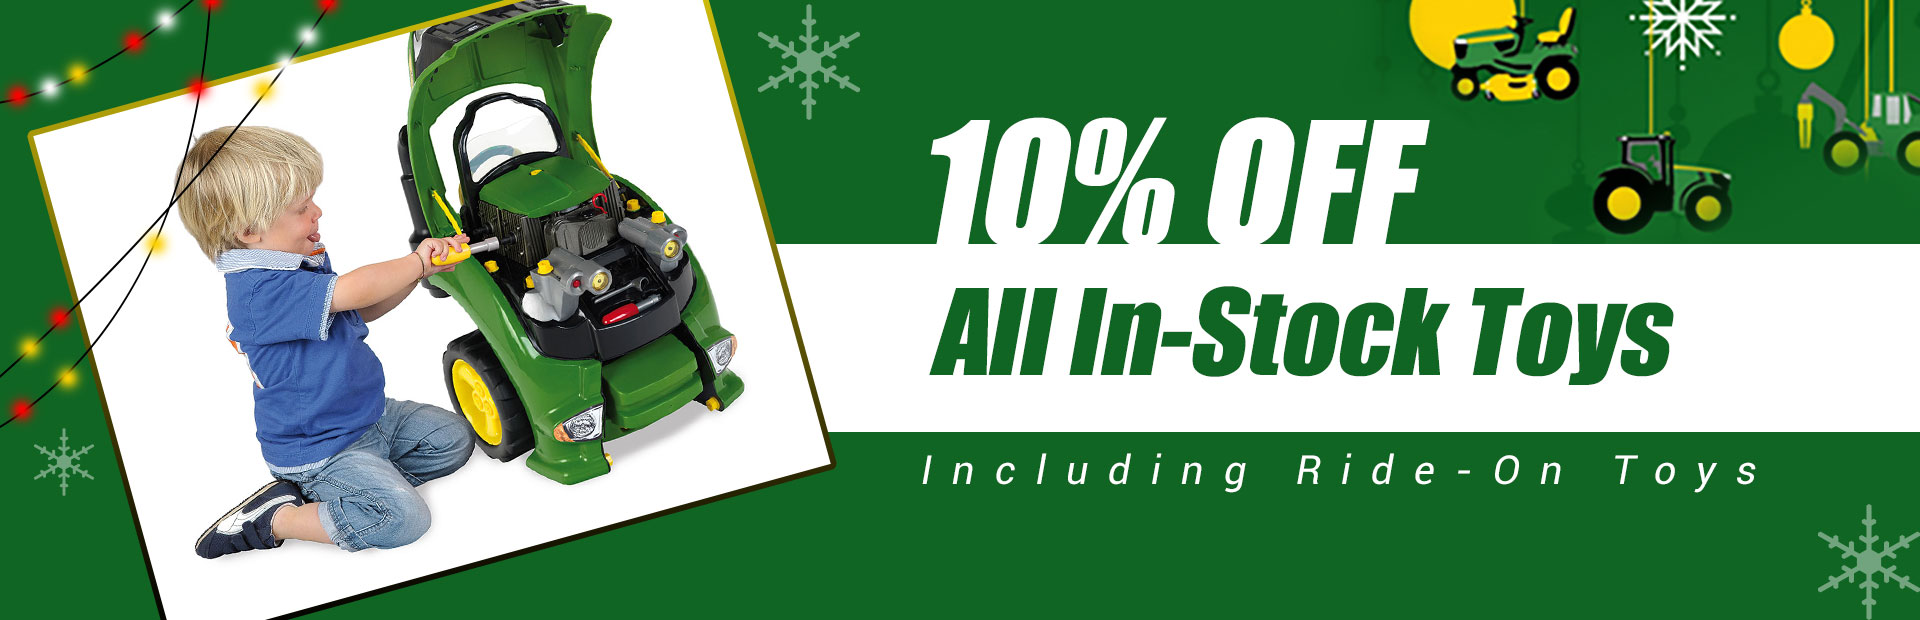 Get 10% off all in-stock toys, including Ride-On toys!